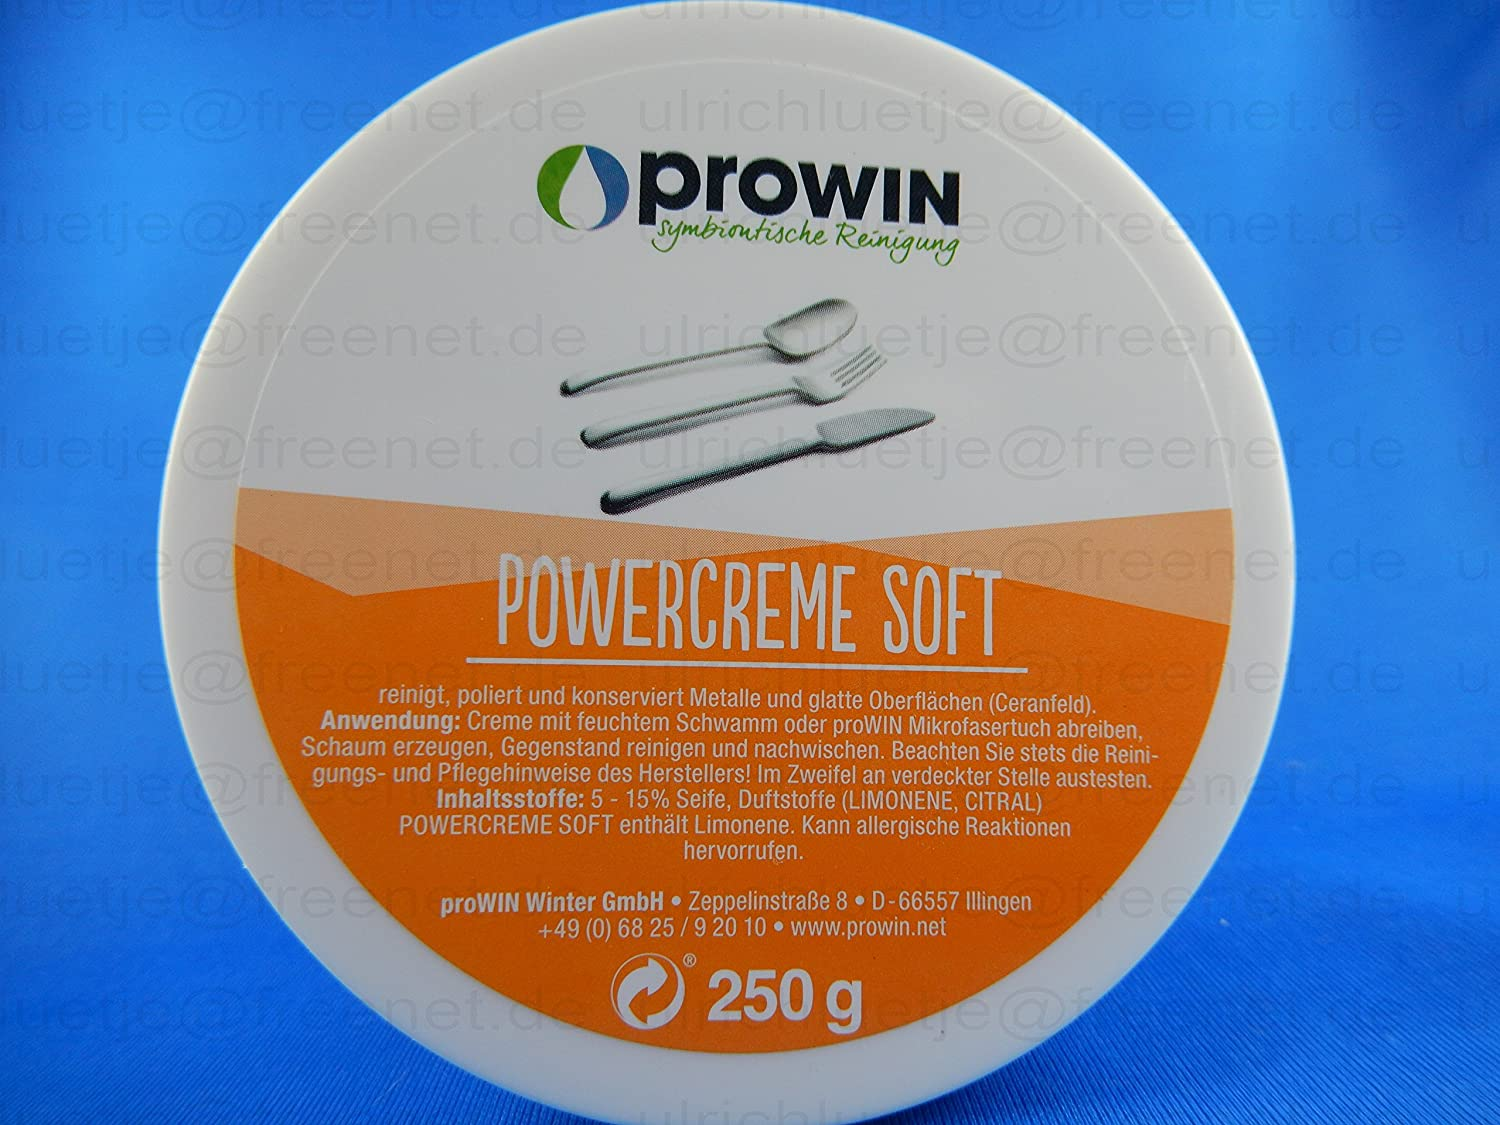 Prowin powercreme soft 250gr. dose: amazon.de: garten